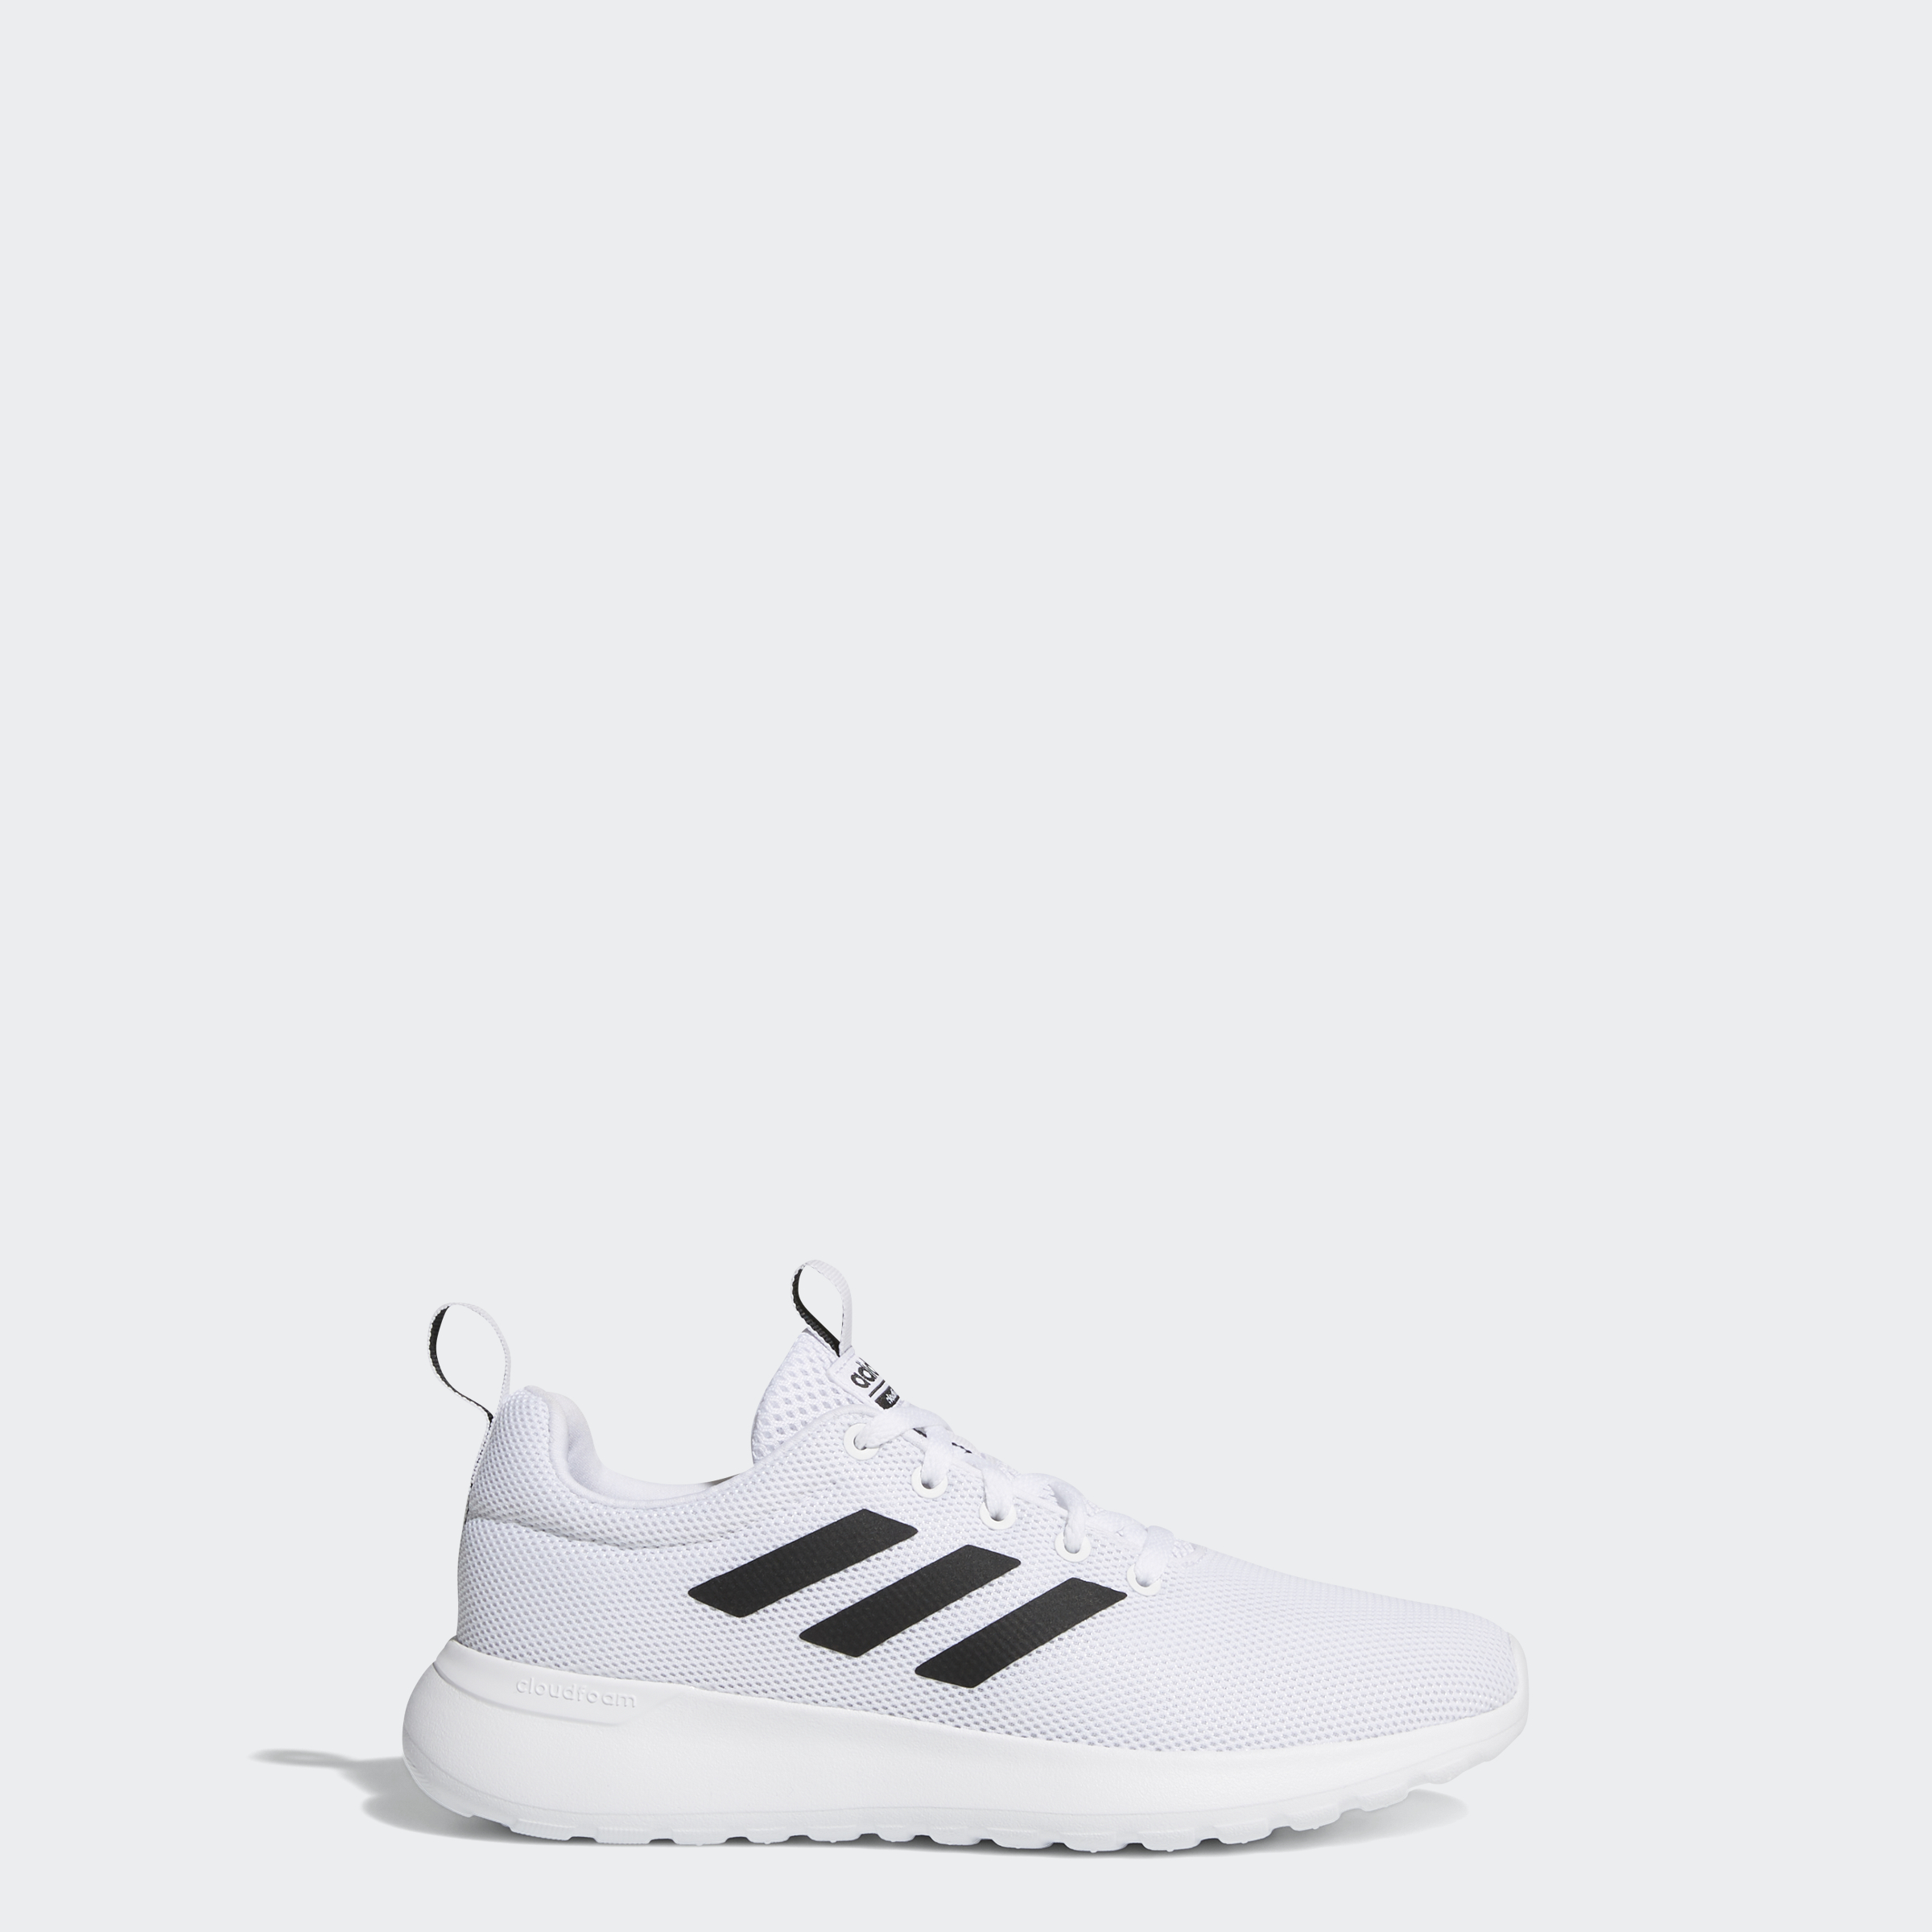 adidas-Lite-Racer-CLN-Shoes-Kids-039 thumbnail 16